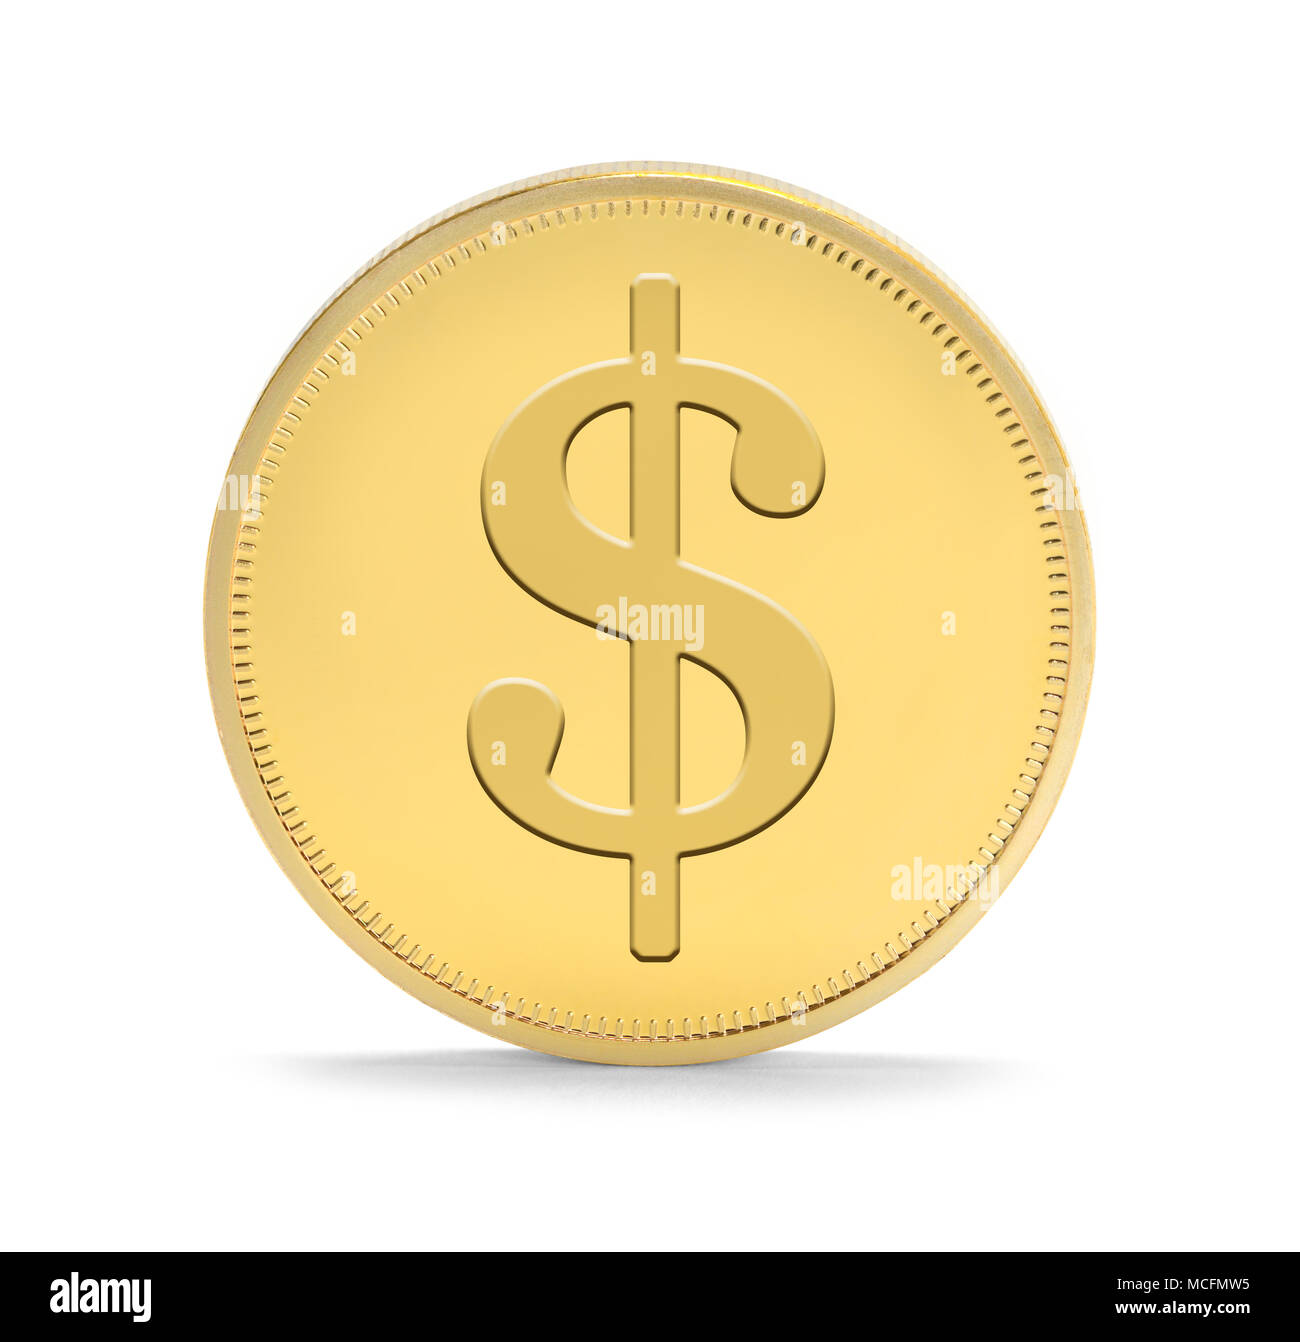 Single Gold Coin with Money Symbol Upright Isolated on a White Background. - Stock Image